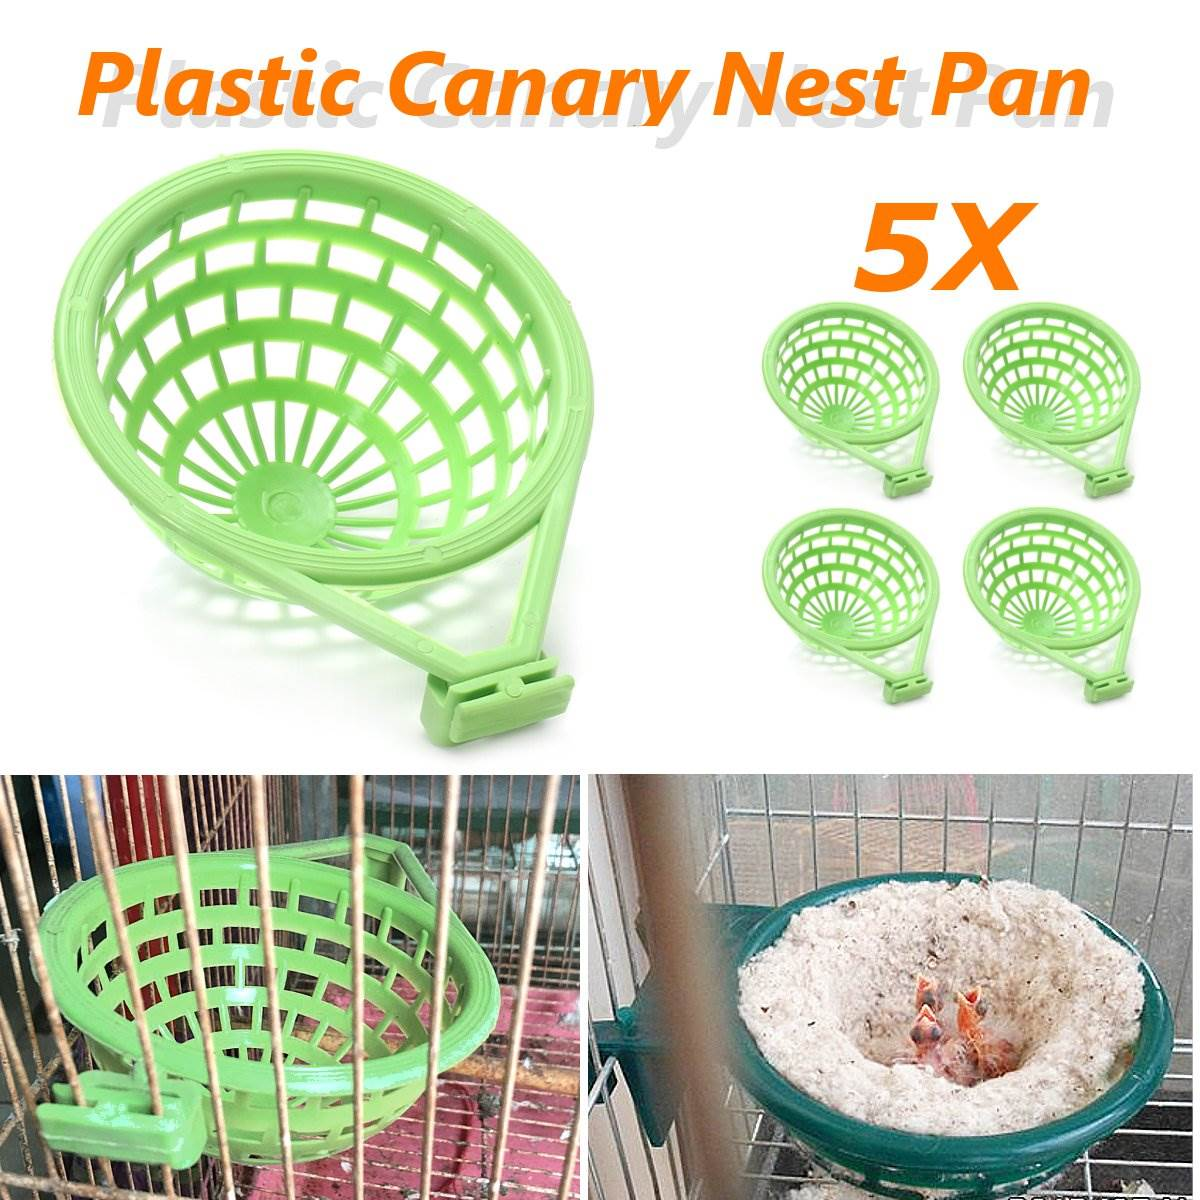 5 stk / Lot Pet Birds Nest Stor Palstic Canary Cage Pan Liner For Nesting Canaries Finches Budgies Hatching Tools Forbruksartikler